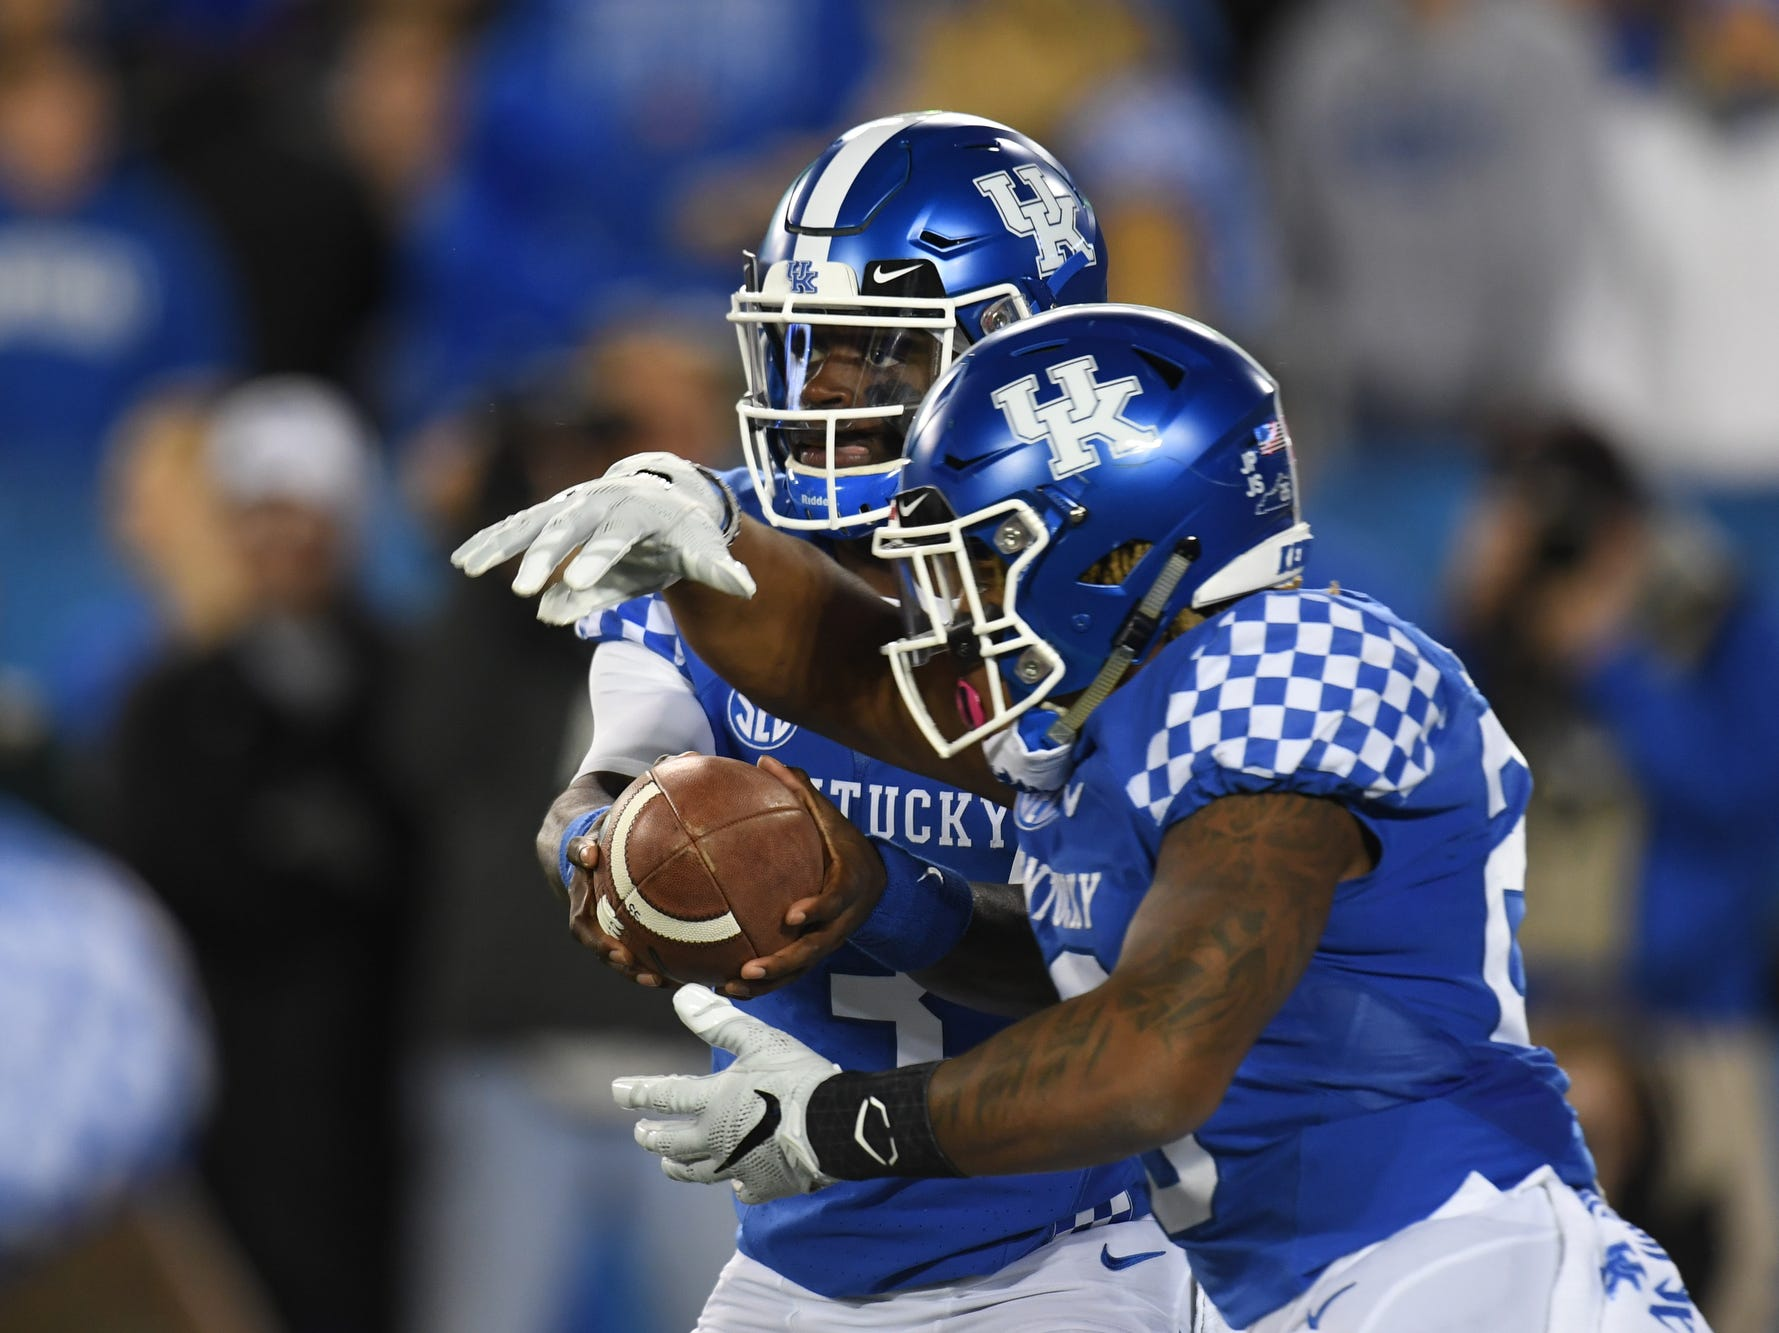 UK QB Terry Wilson hands off the ball to RB Benny Snell, Jr. during the University of Kentucky football game against Vanderbilt at Kroger Field in Lexington, Kentucky on Saturday, October 20, 2018.